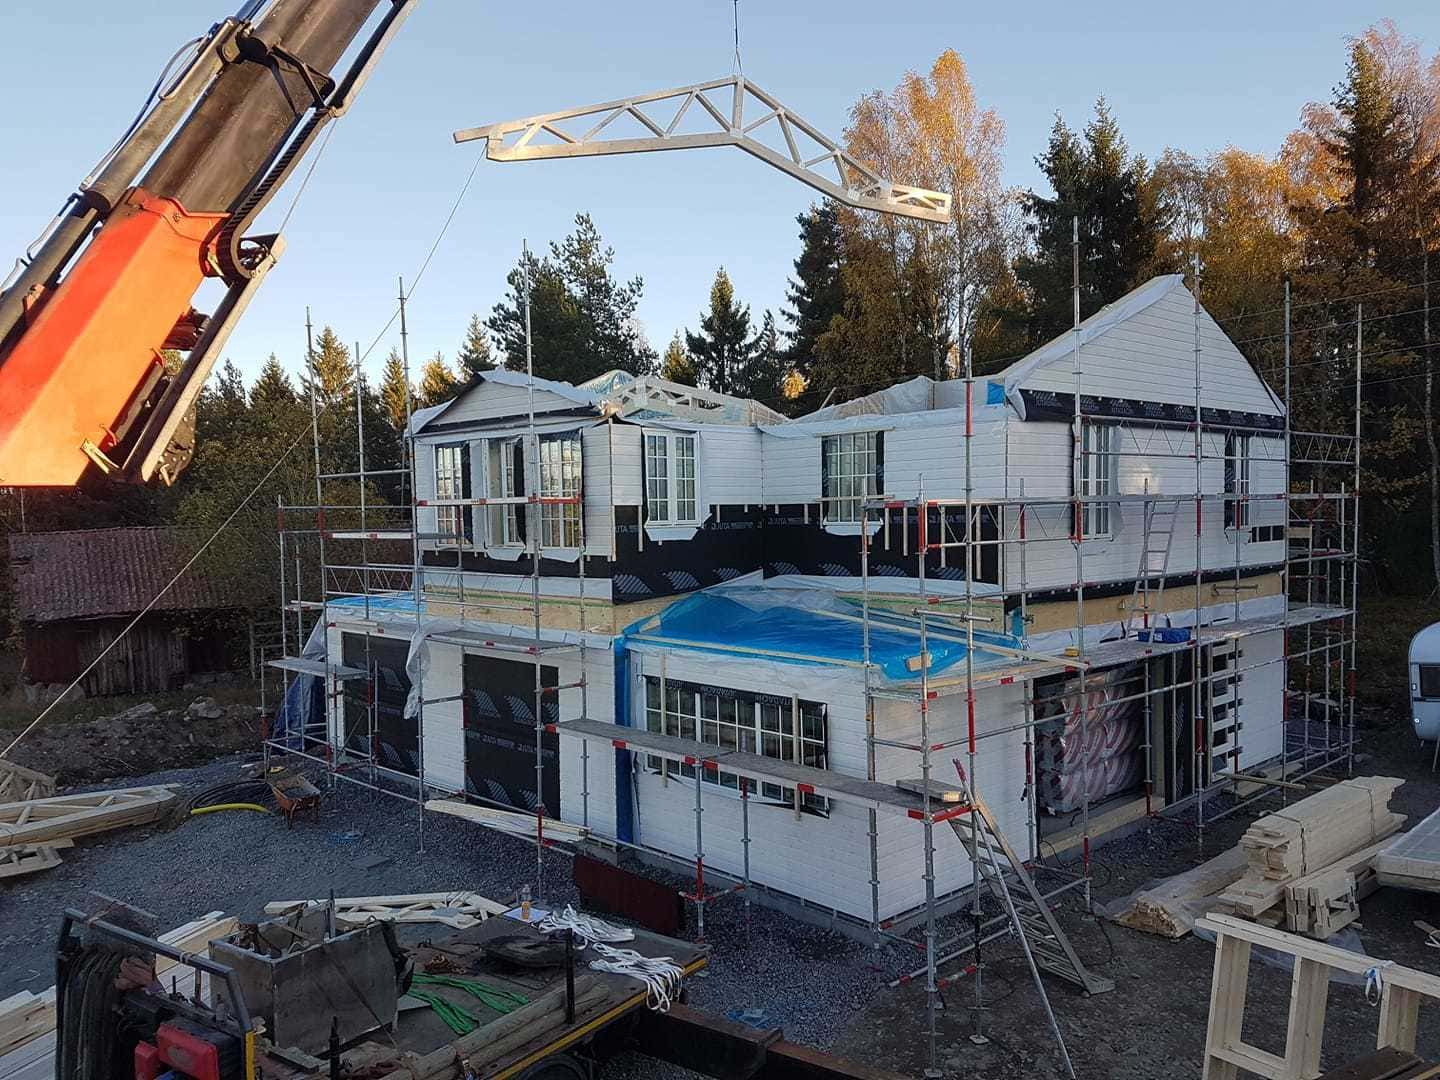 Single sloped double sloped four sloped roofs are built from wooden trusses according to the customers wishes.